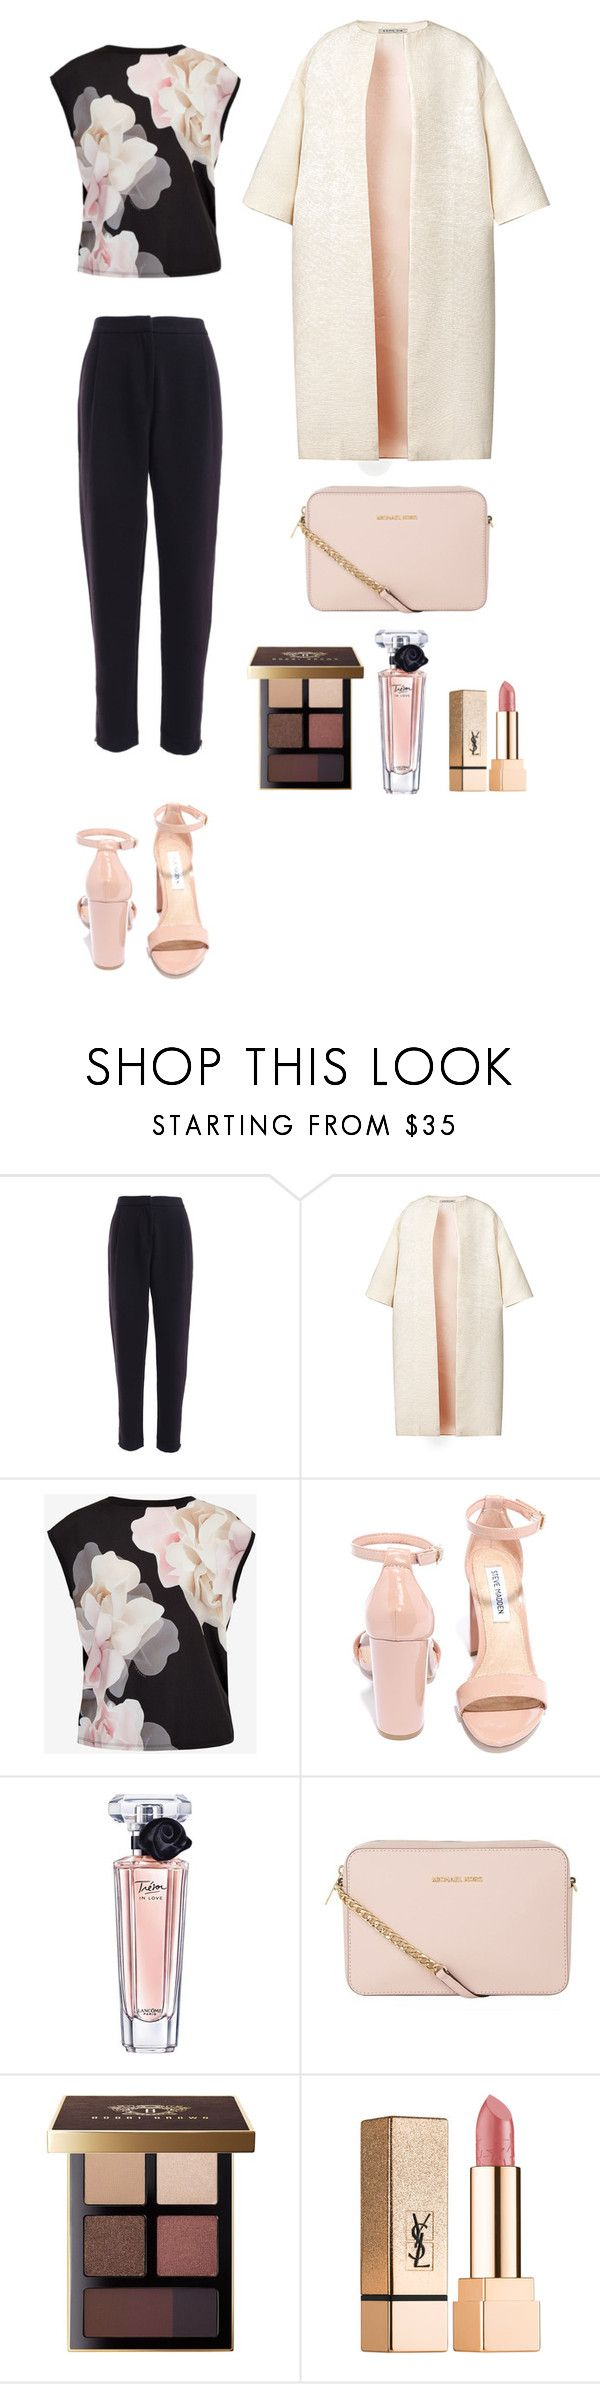 """Style #90"" by maksimchuk-vika ❤ liked on Polyvore featuring Esme Vie, Ted Baker, Steve Madden, Lancôme, MICHAEL Michael Kors, Bobbi Brown Cosmetics and Yves Saint Laurent"